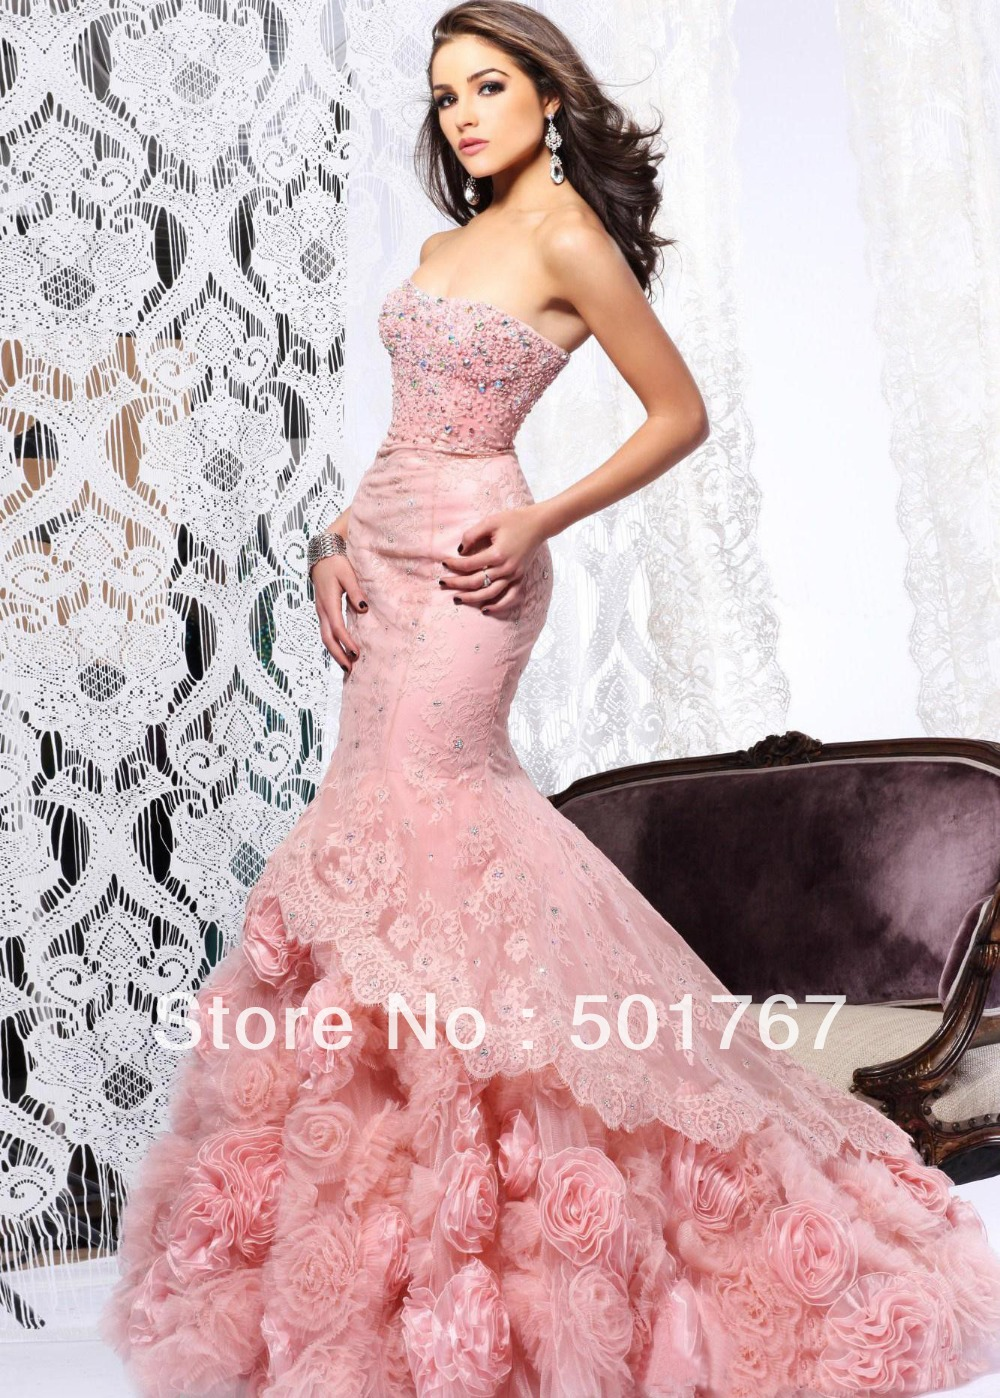 pink flower wedding dress 2014 designs luxury pink mermaid strapless crystals 6581